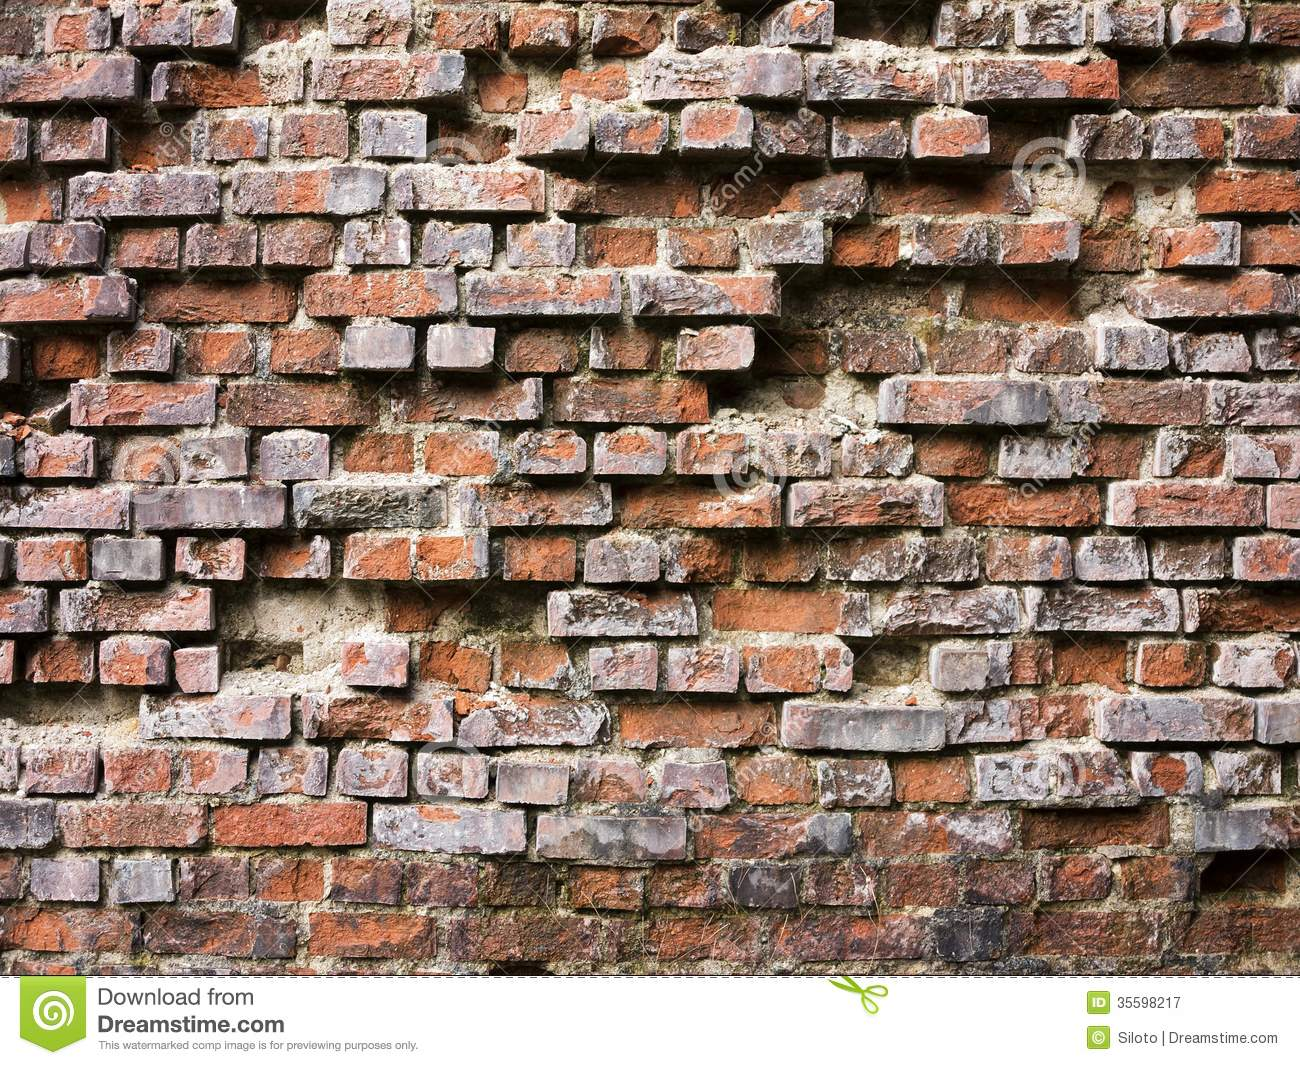 Cracked brick wall drawing brick wall - Brick Broken Damaged Old Wall